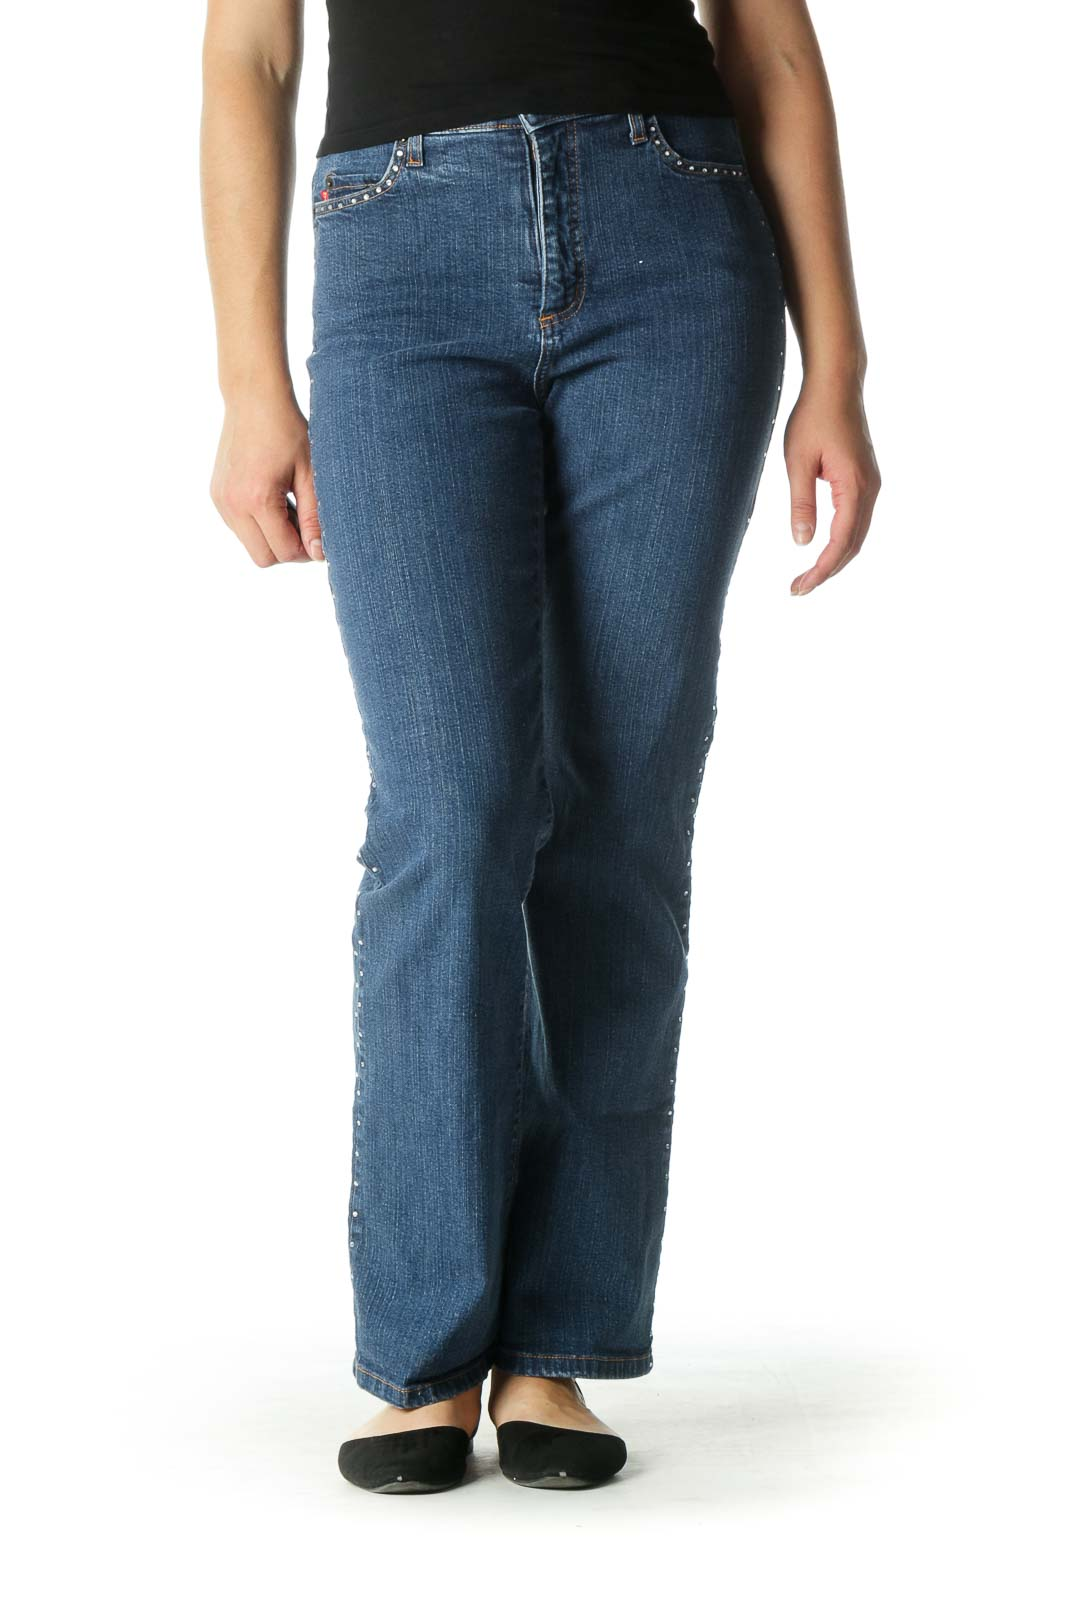 Blue High Waisted Flared Jeans with Rhinestones Front